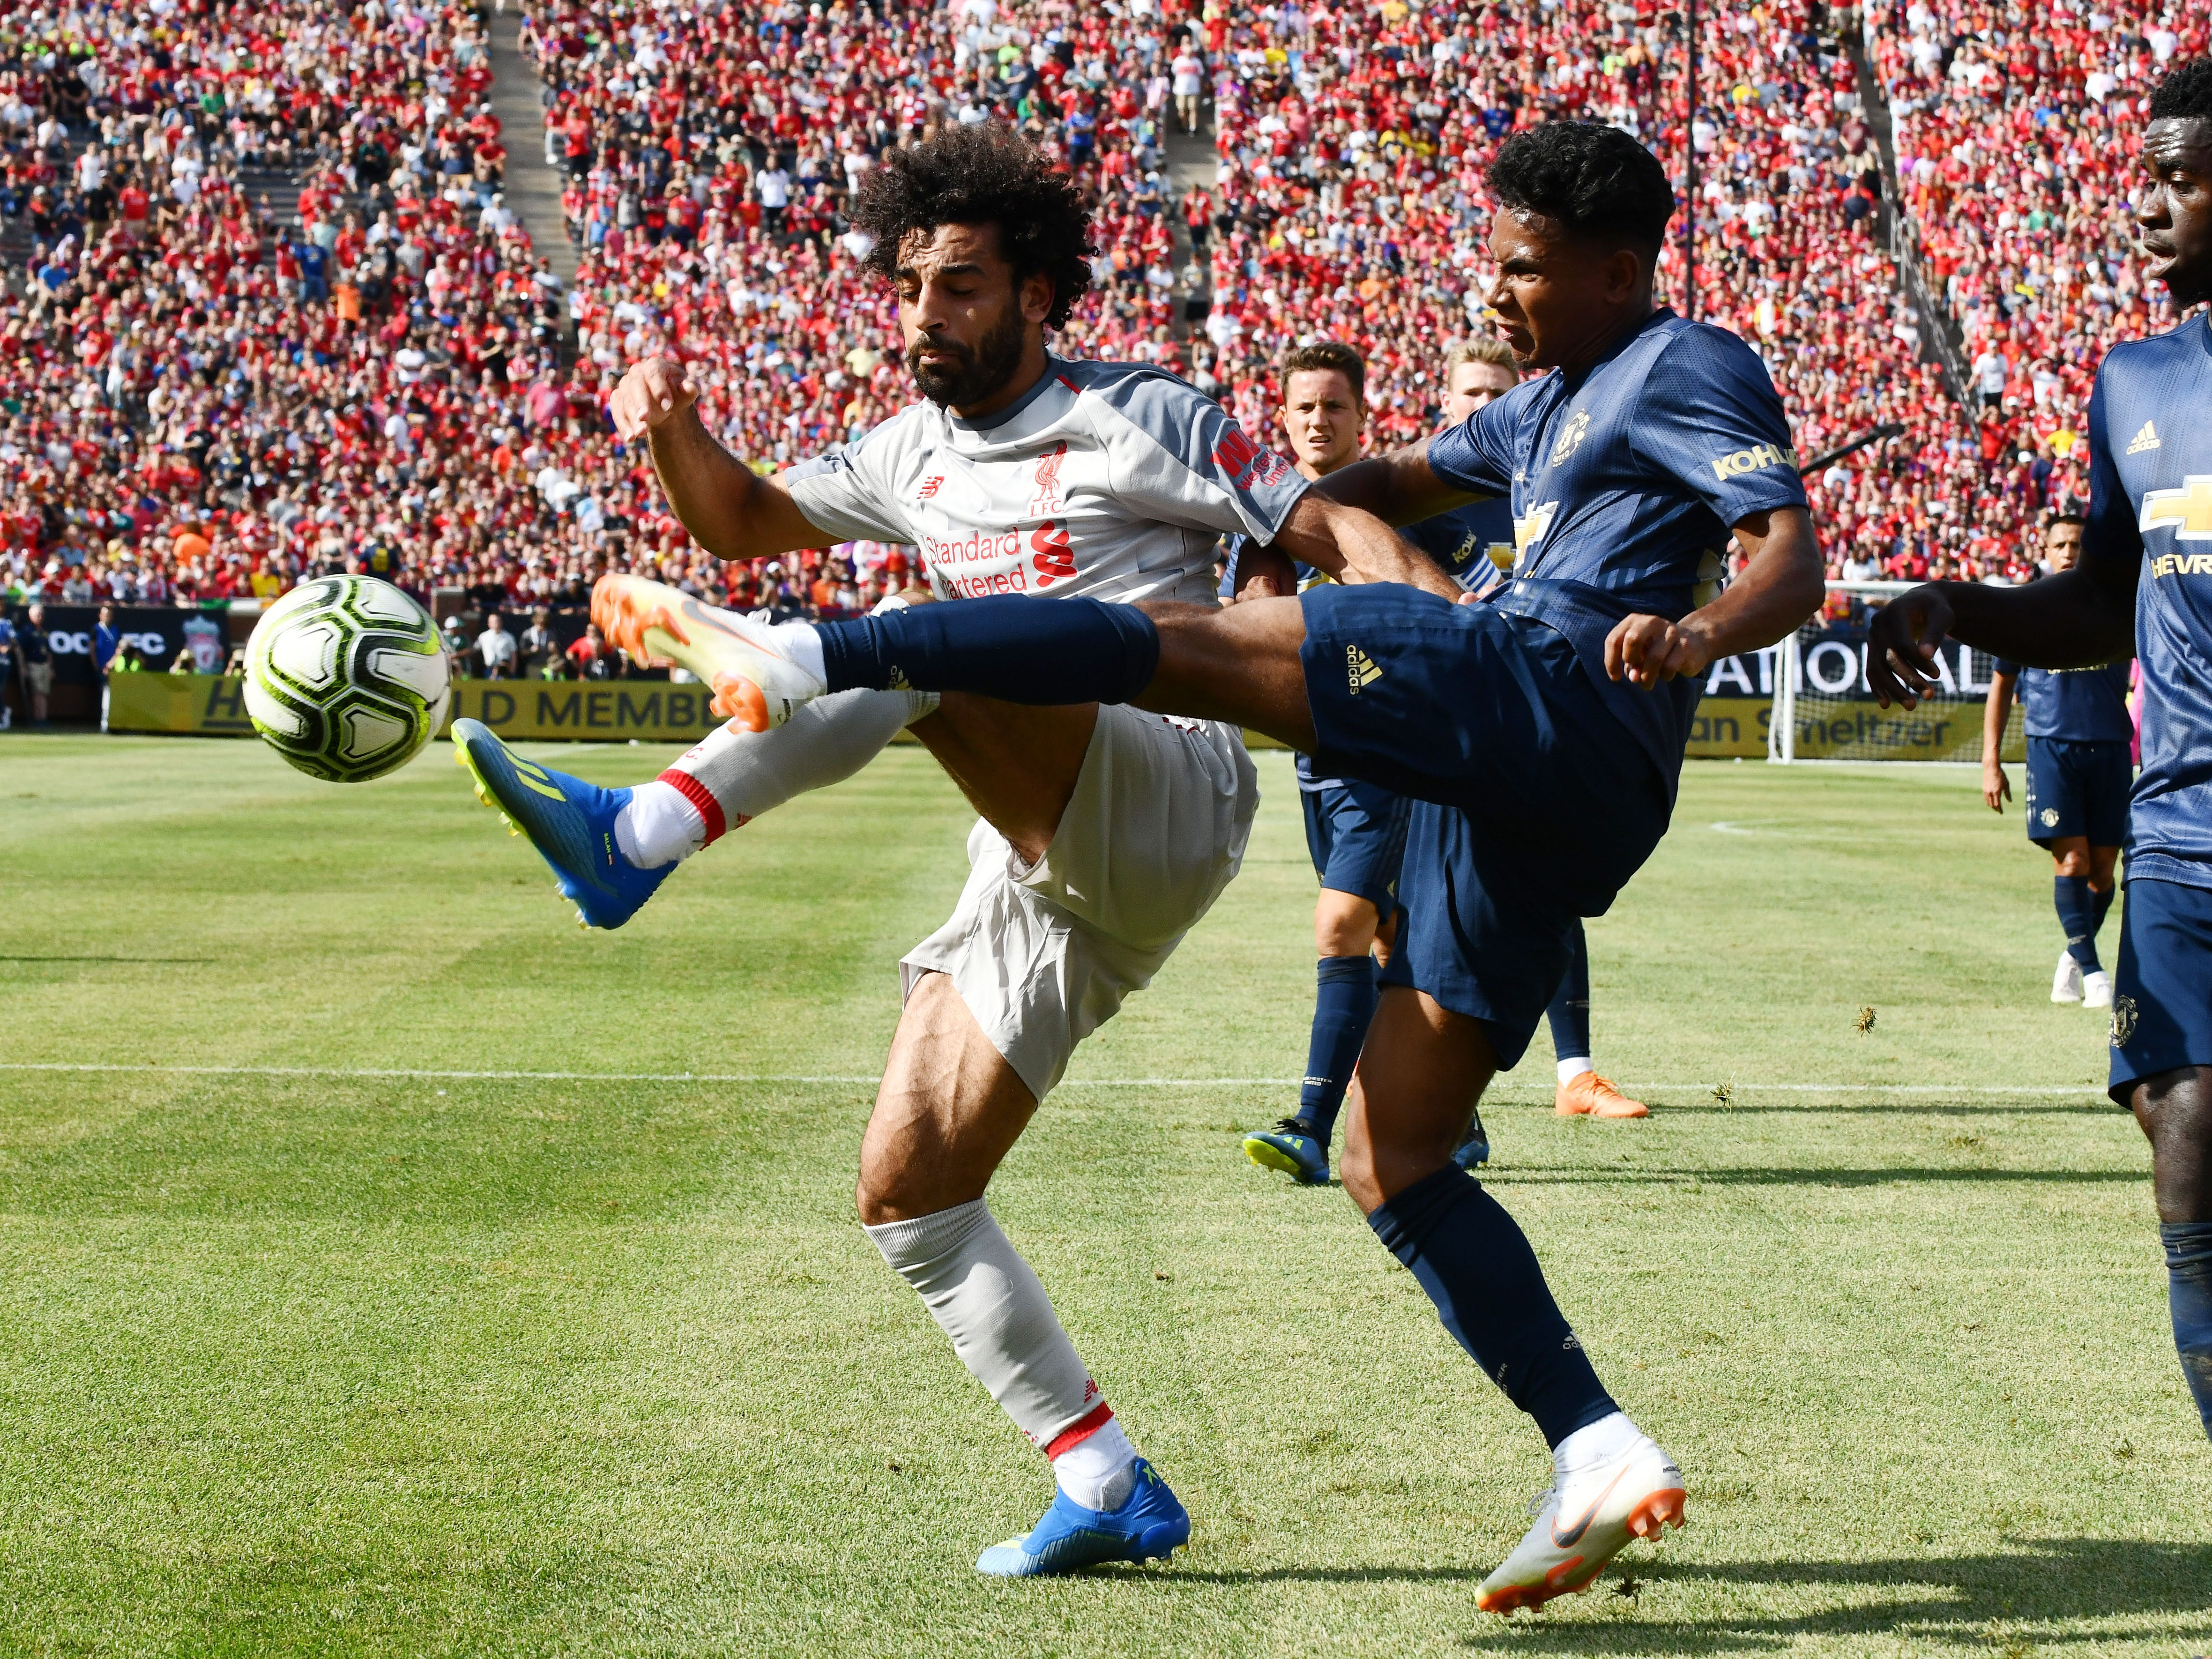 Liverpool's Mohamed Salah gets kicked in the face by Manchester United's Demetri Mitchell, giving Liverpool a penalty kick, putting Liverpool on the board first in the first half.